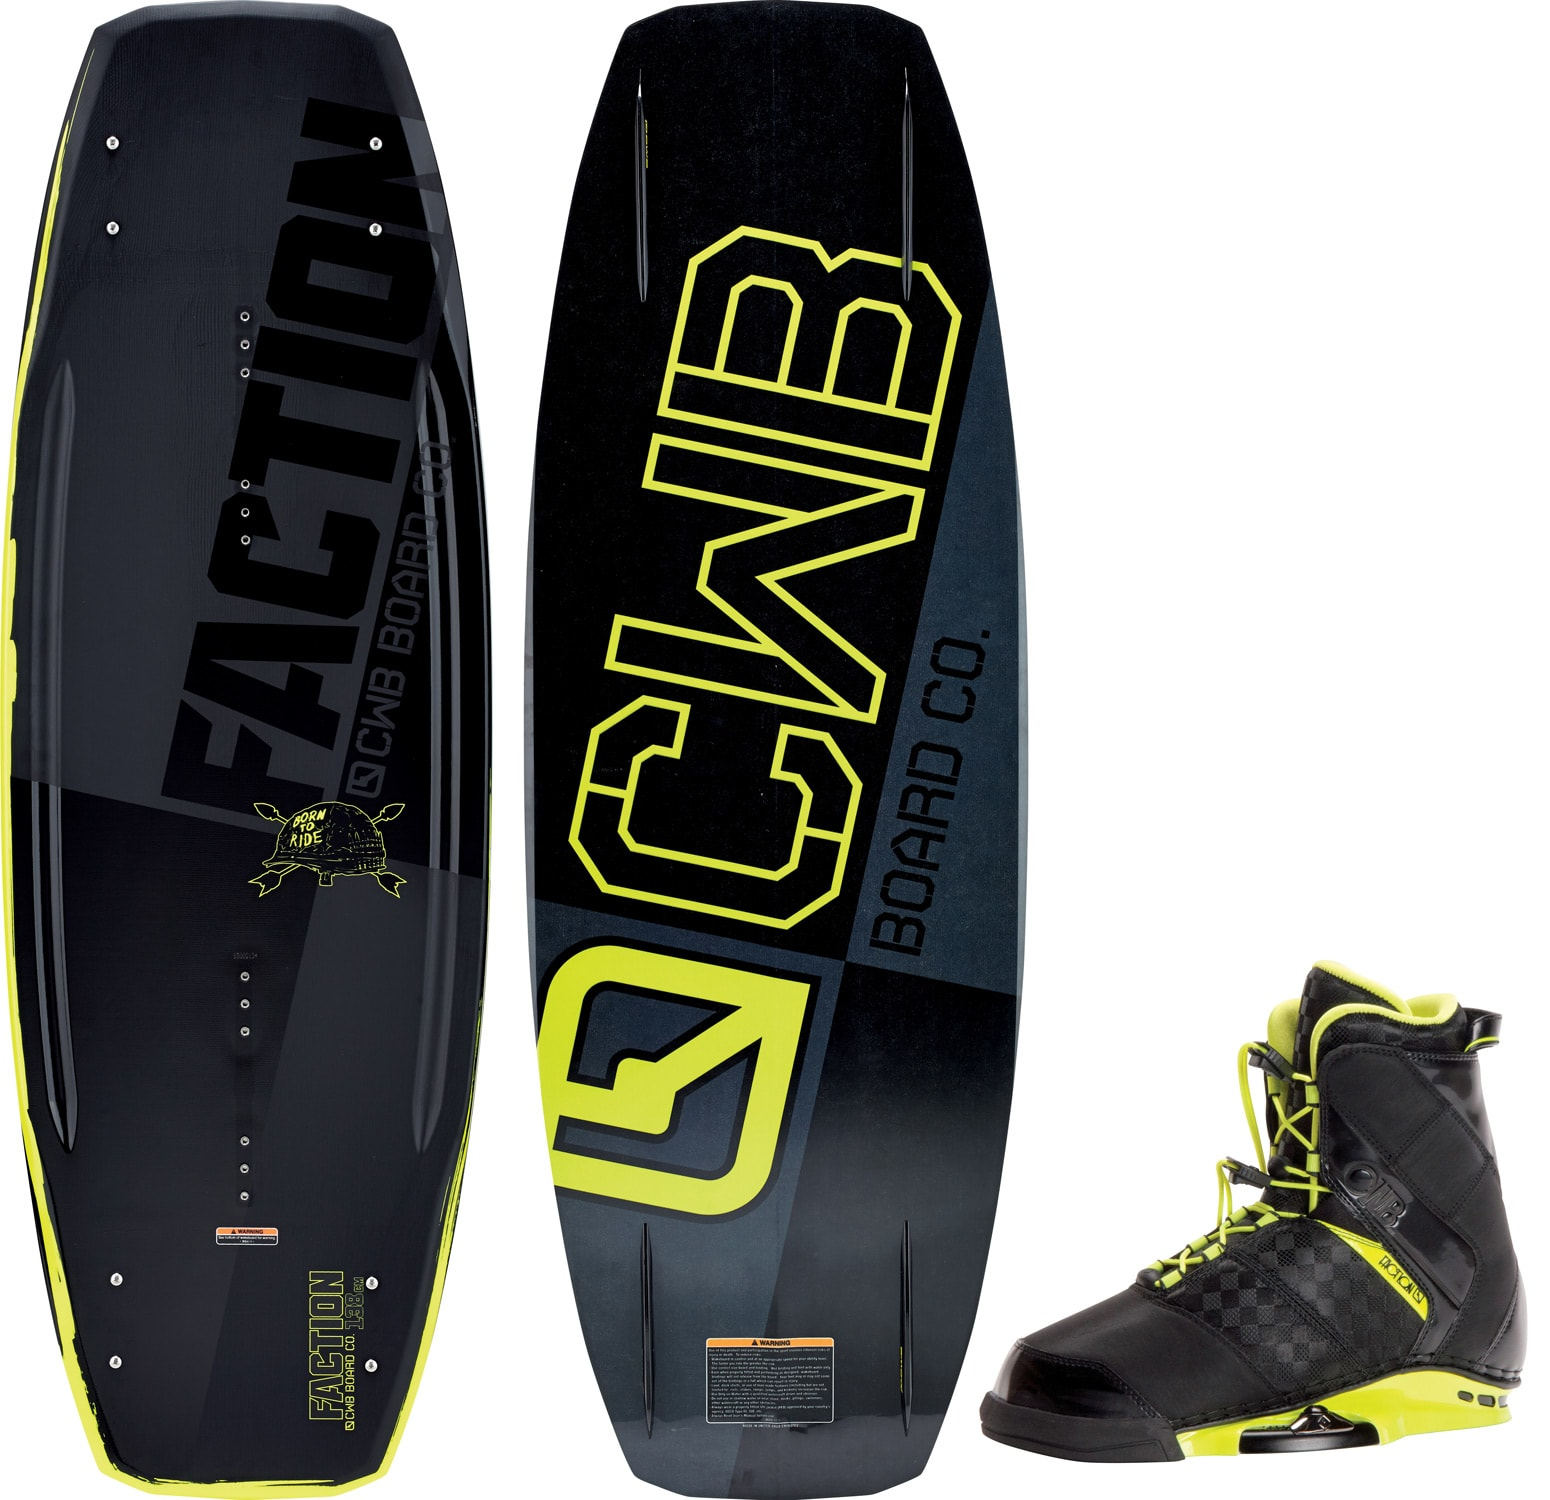 Wakeboards For Sale >> CWB Faction Wakeboard w/ Faction Bindings